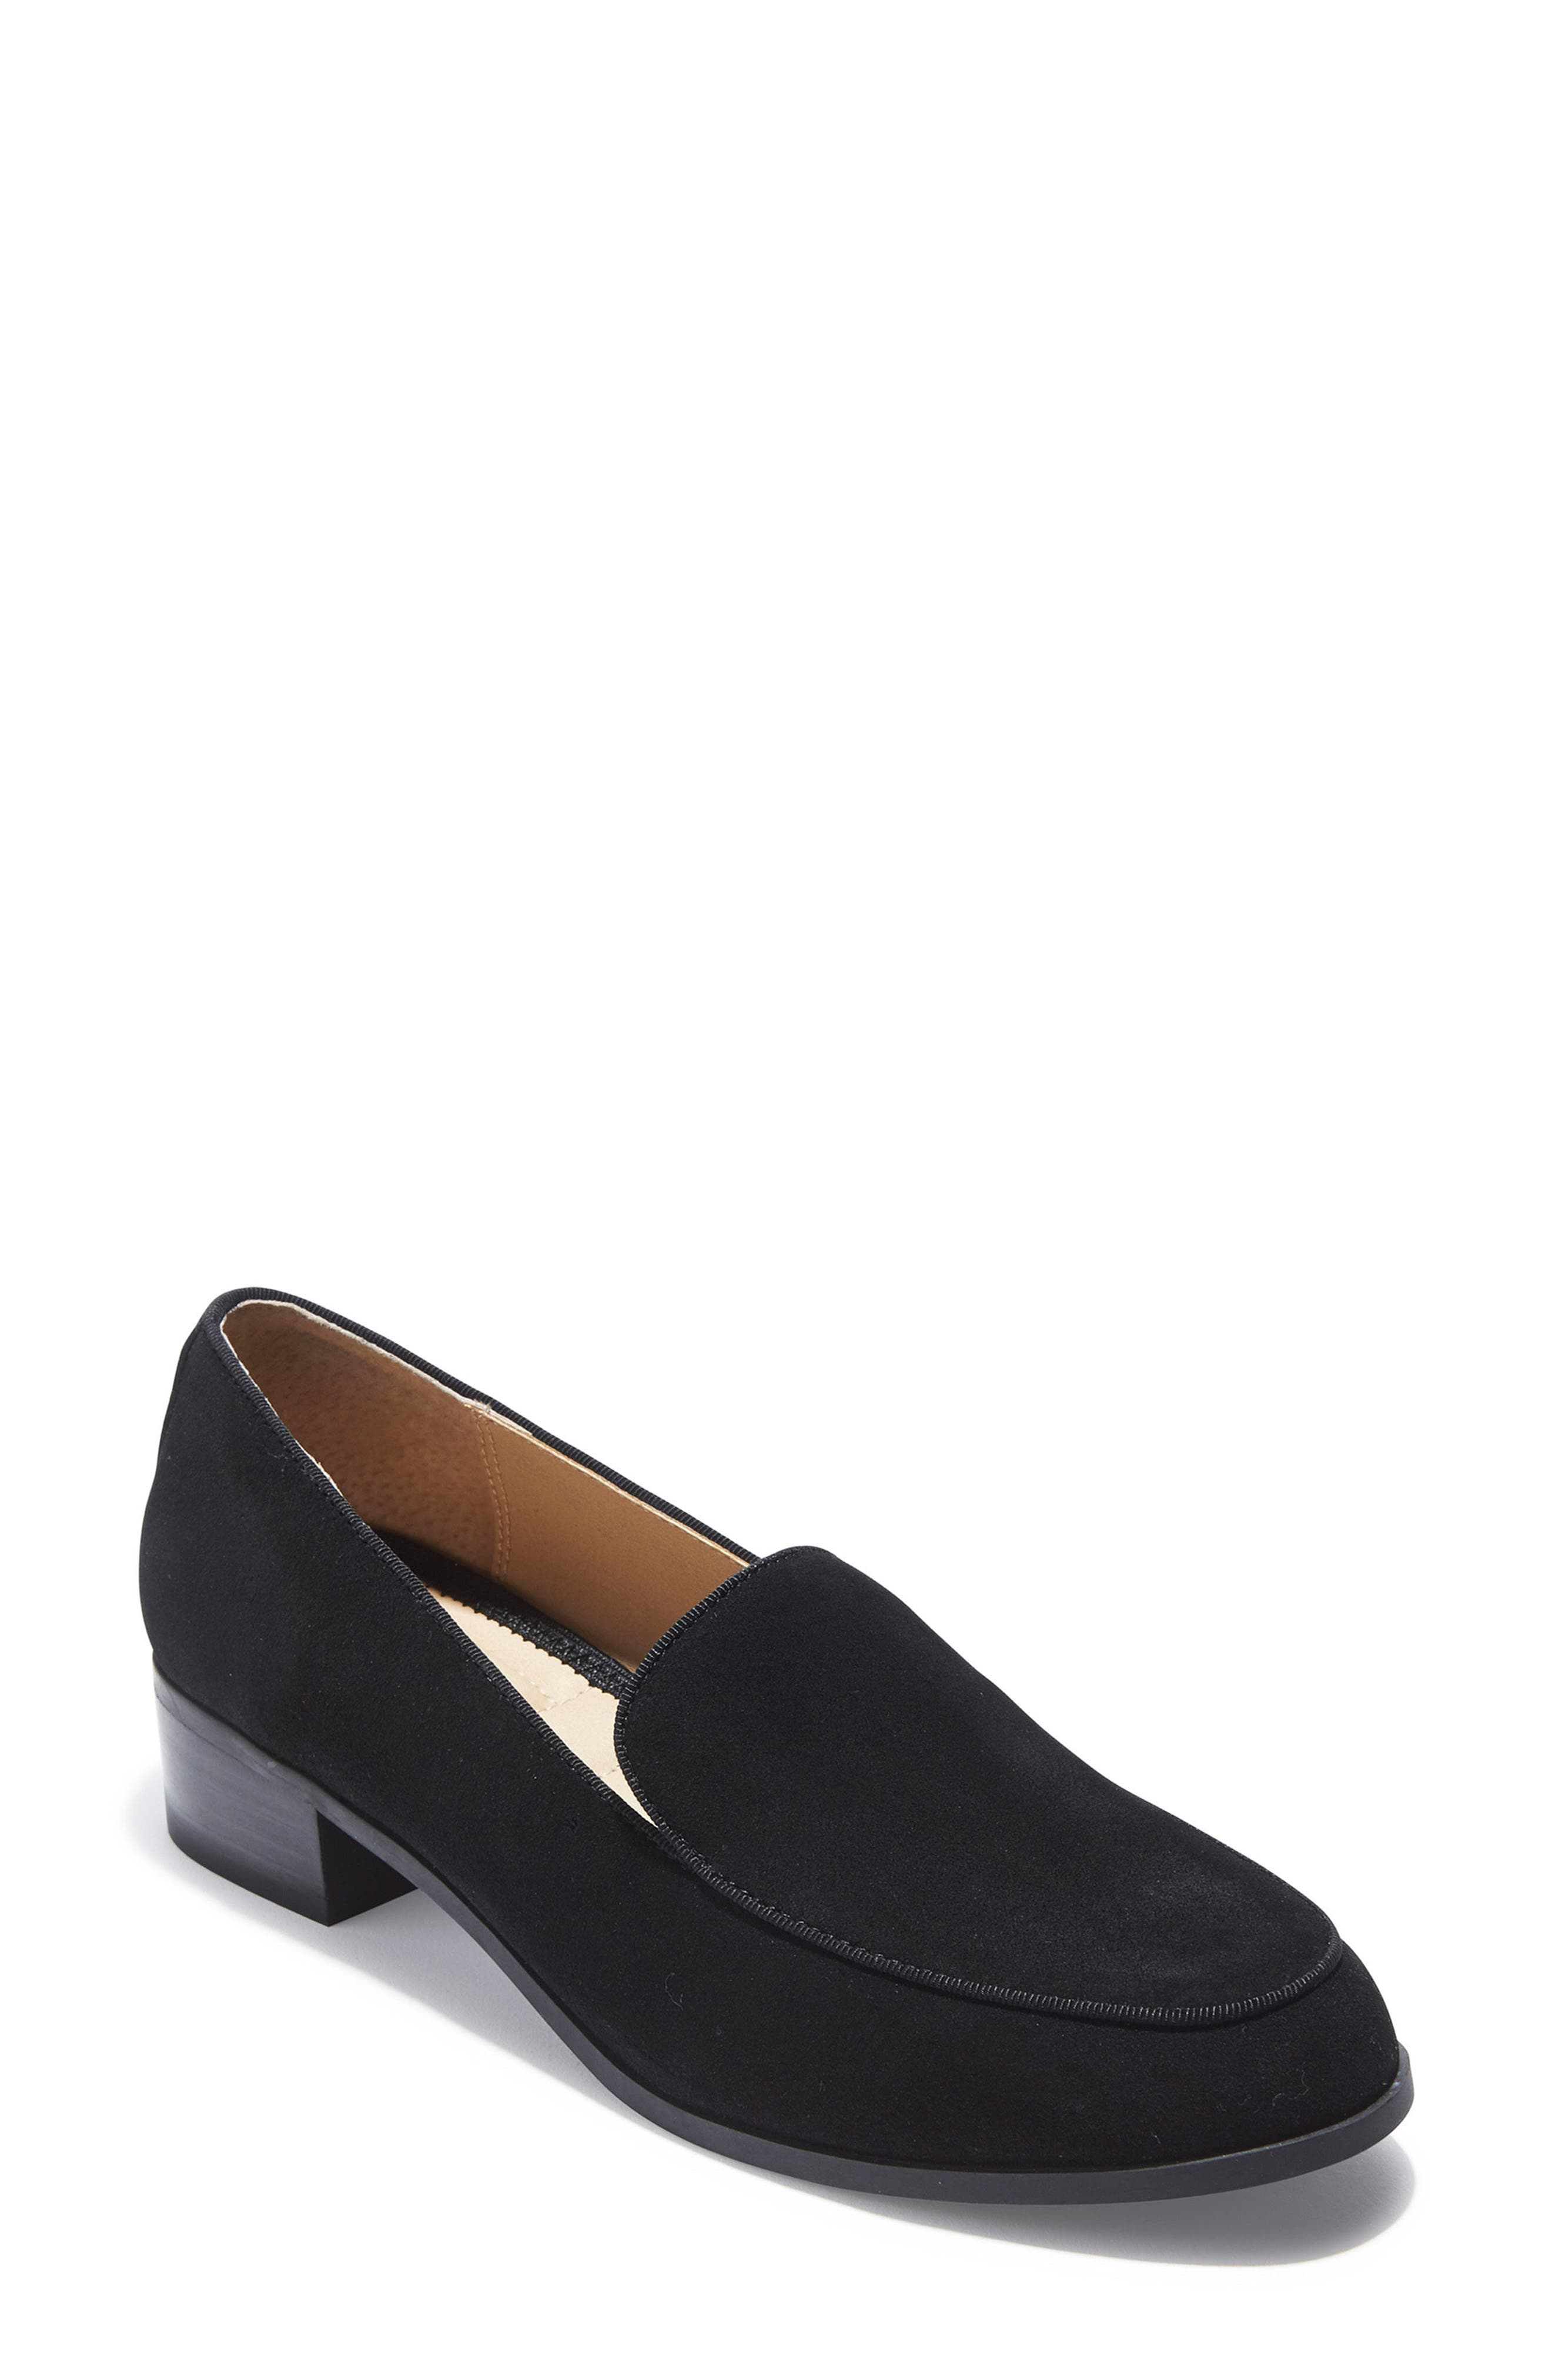 Jazzy Loafer,                             Main thumbnail 1, color,                             Black Suede